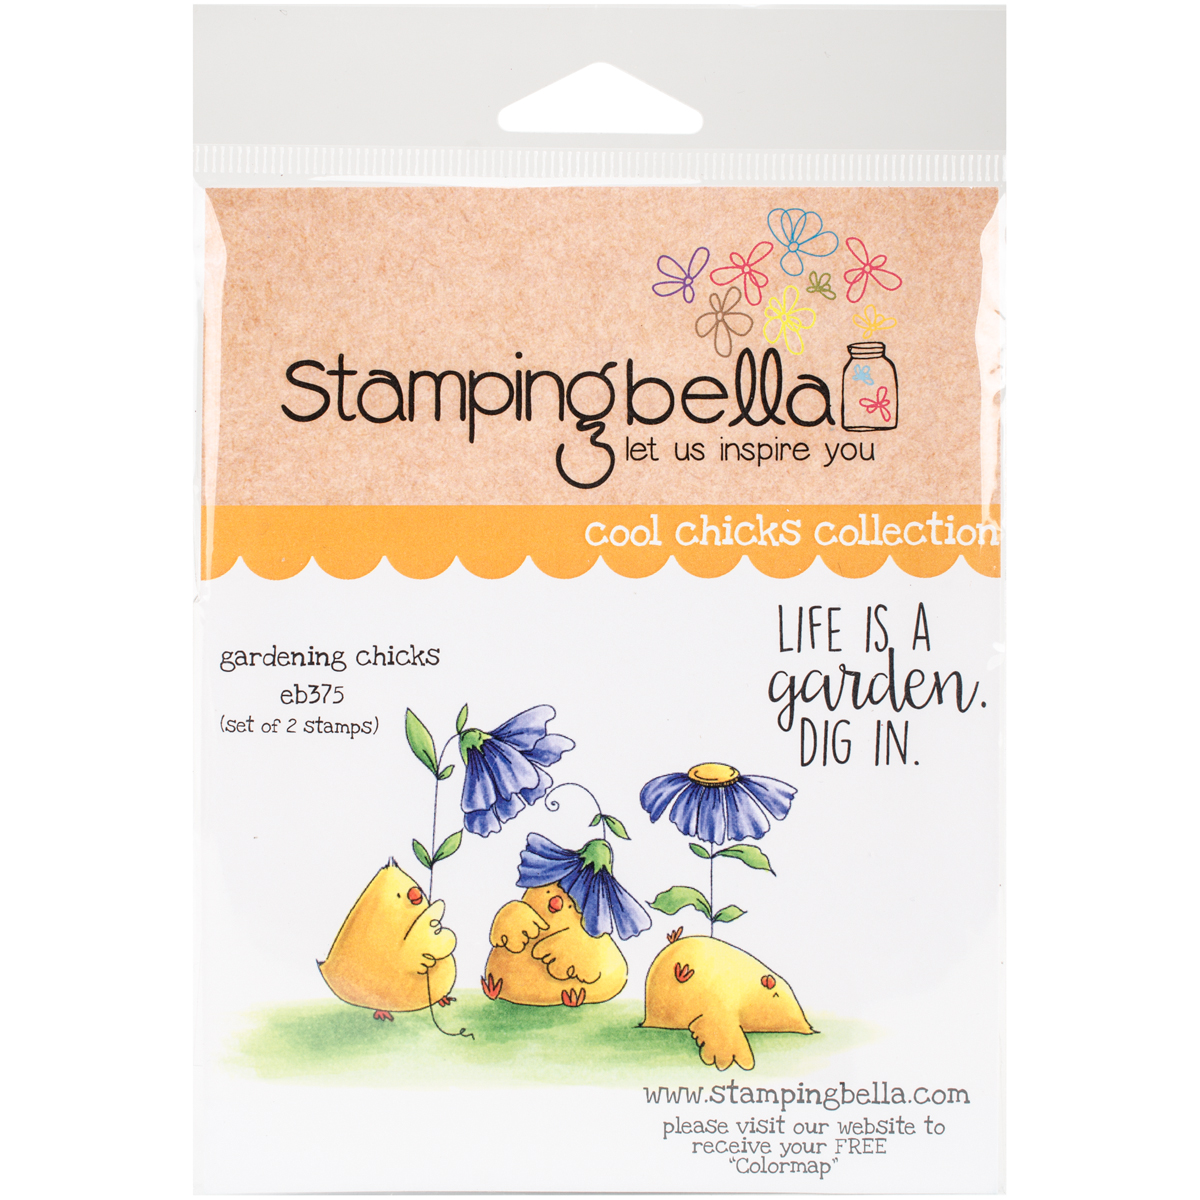 "Stamping Bella Cling Stamp 6.5""X4.5""-Gardening Chicks"